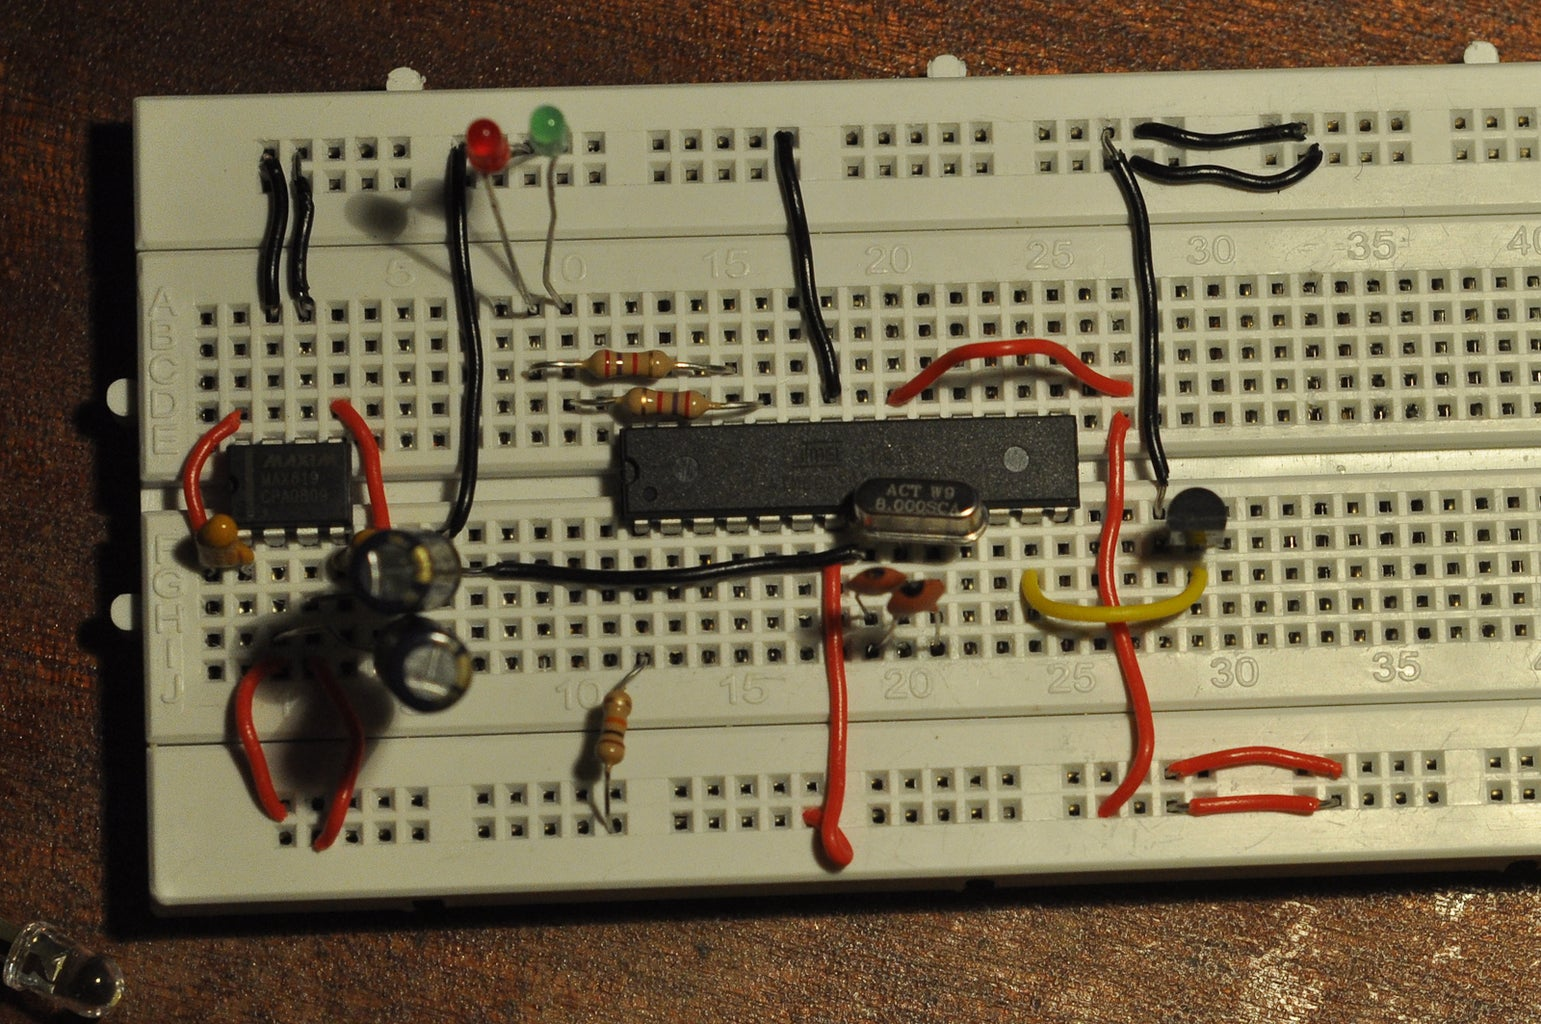 Adding Infrared Output